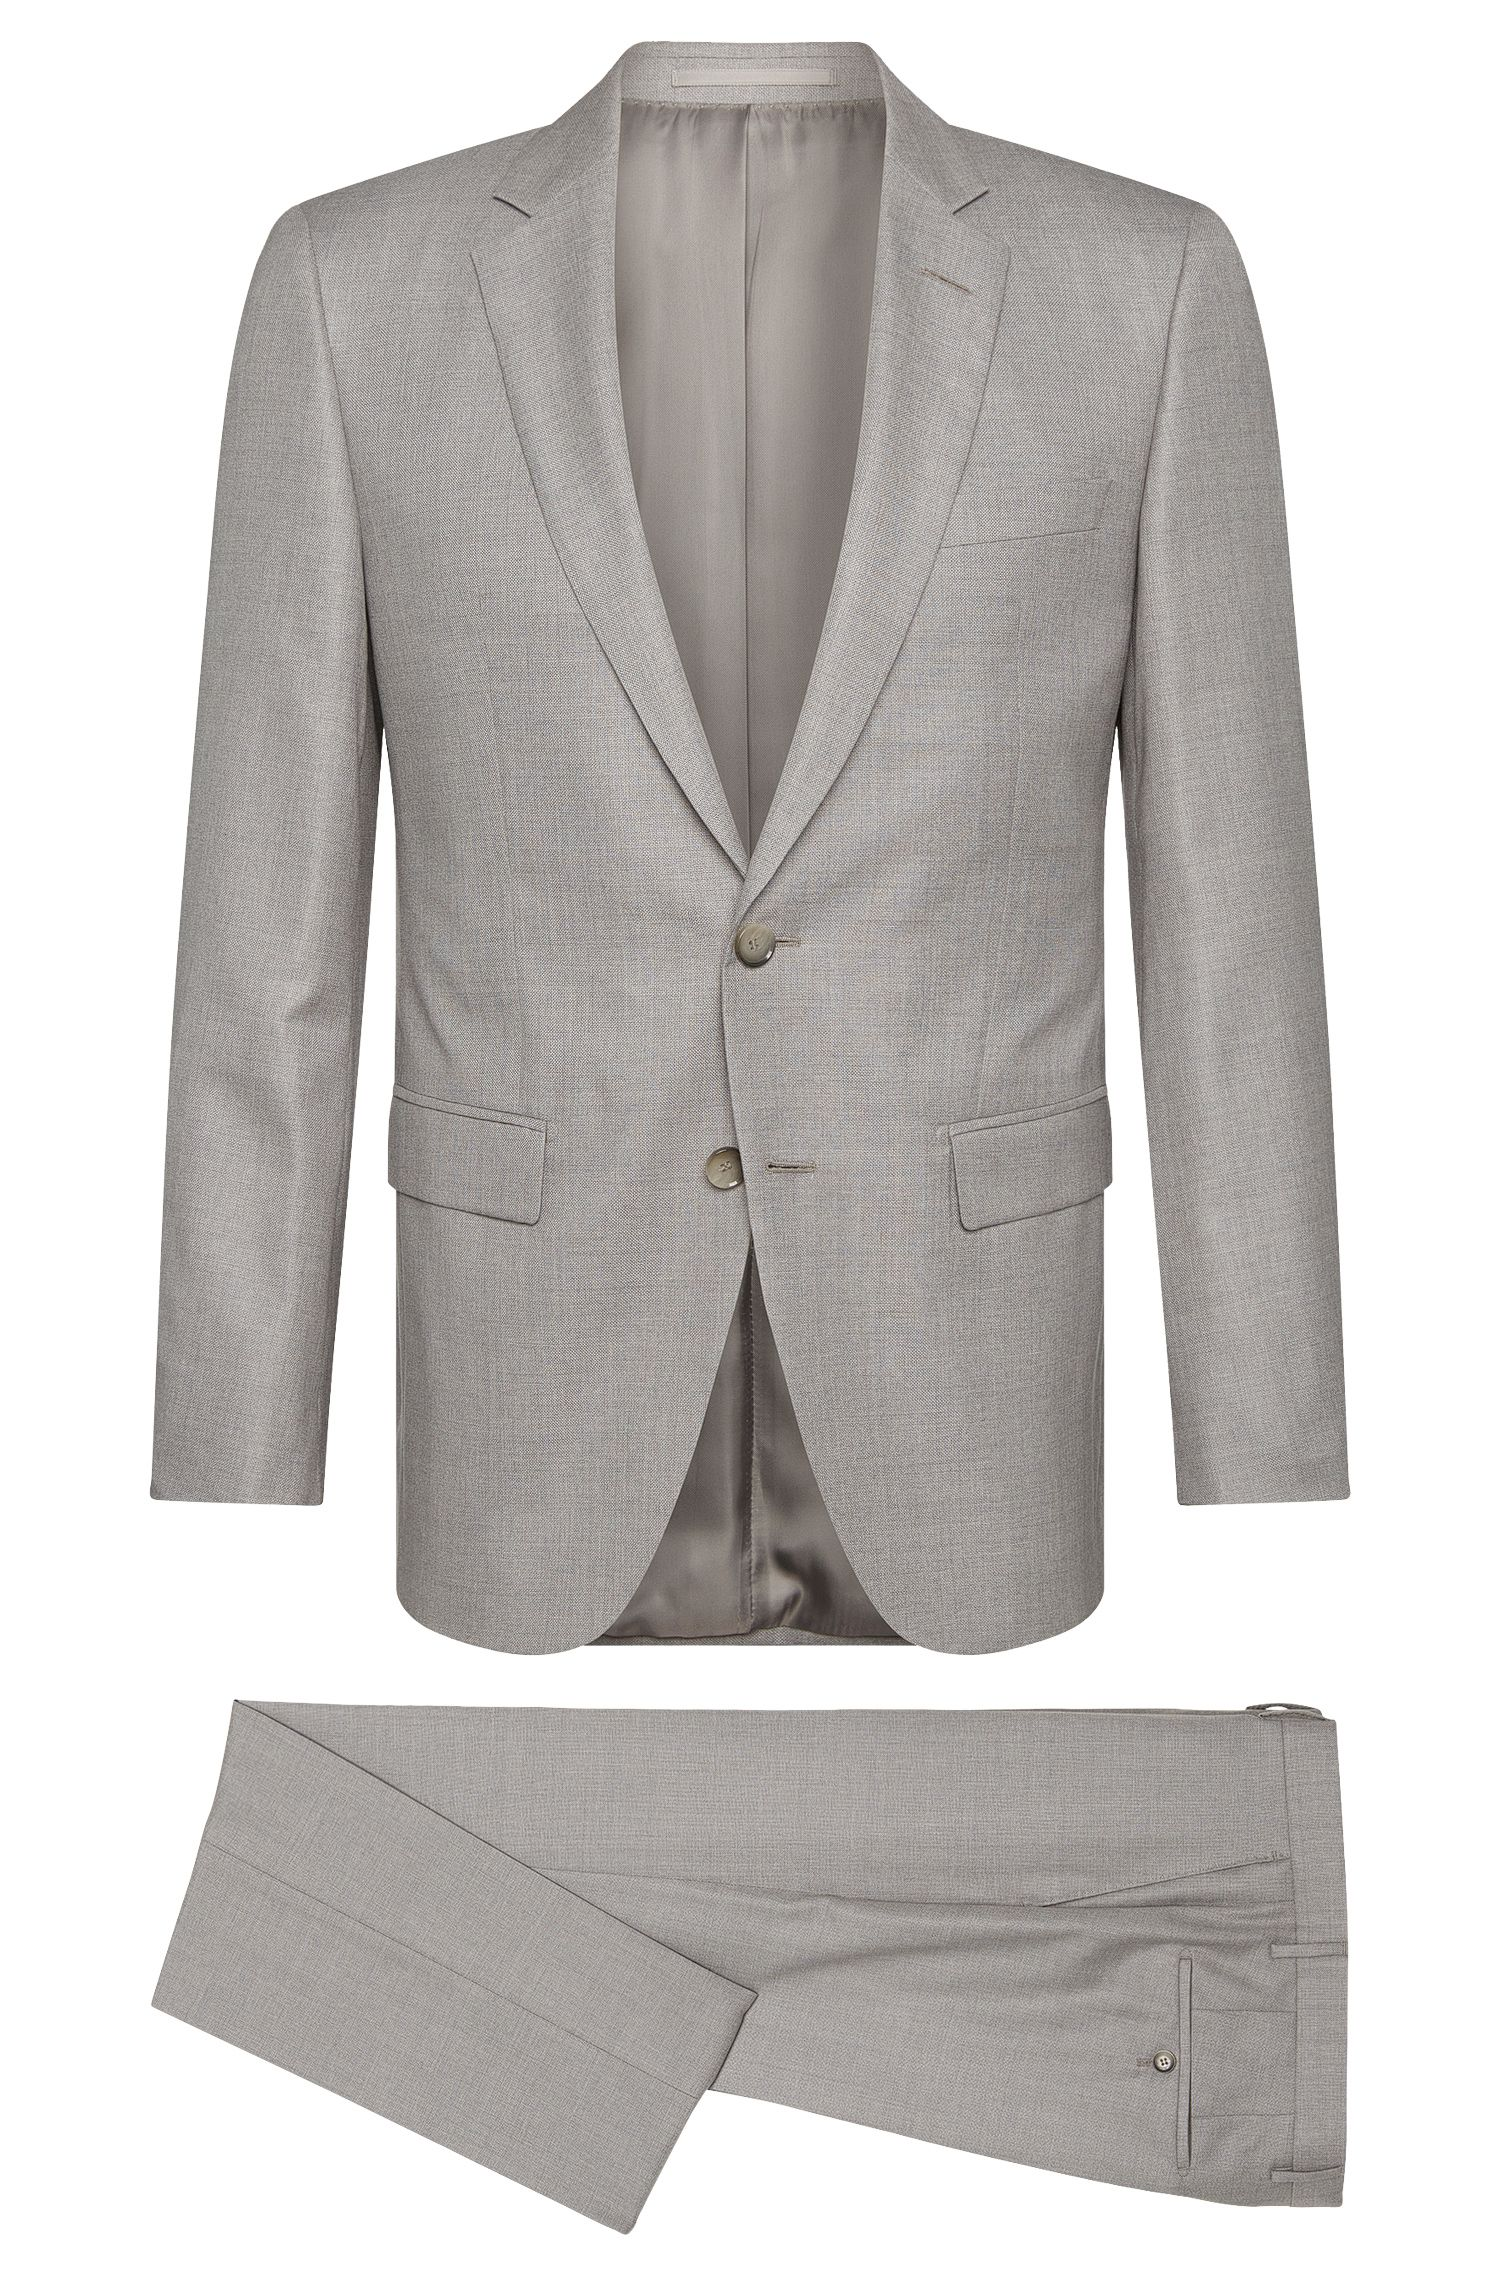 'T-Harvers/Glover' | Slim Fit, Italian Virgin Wool Silk Suit